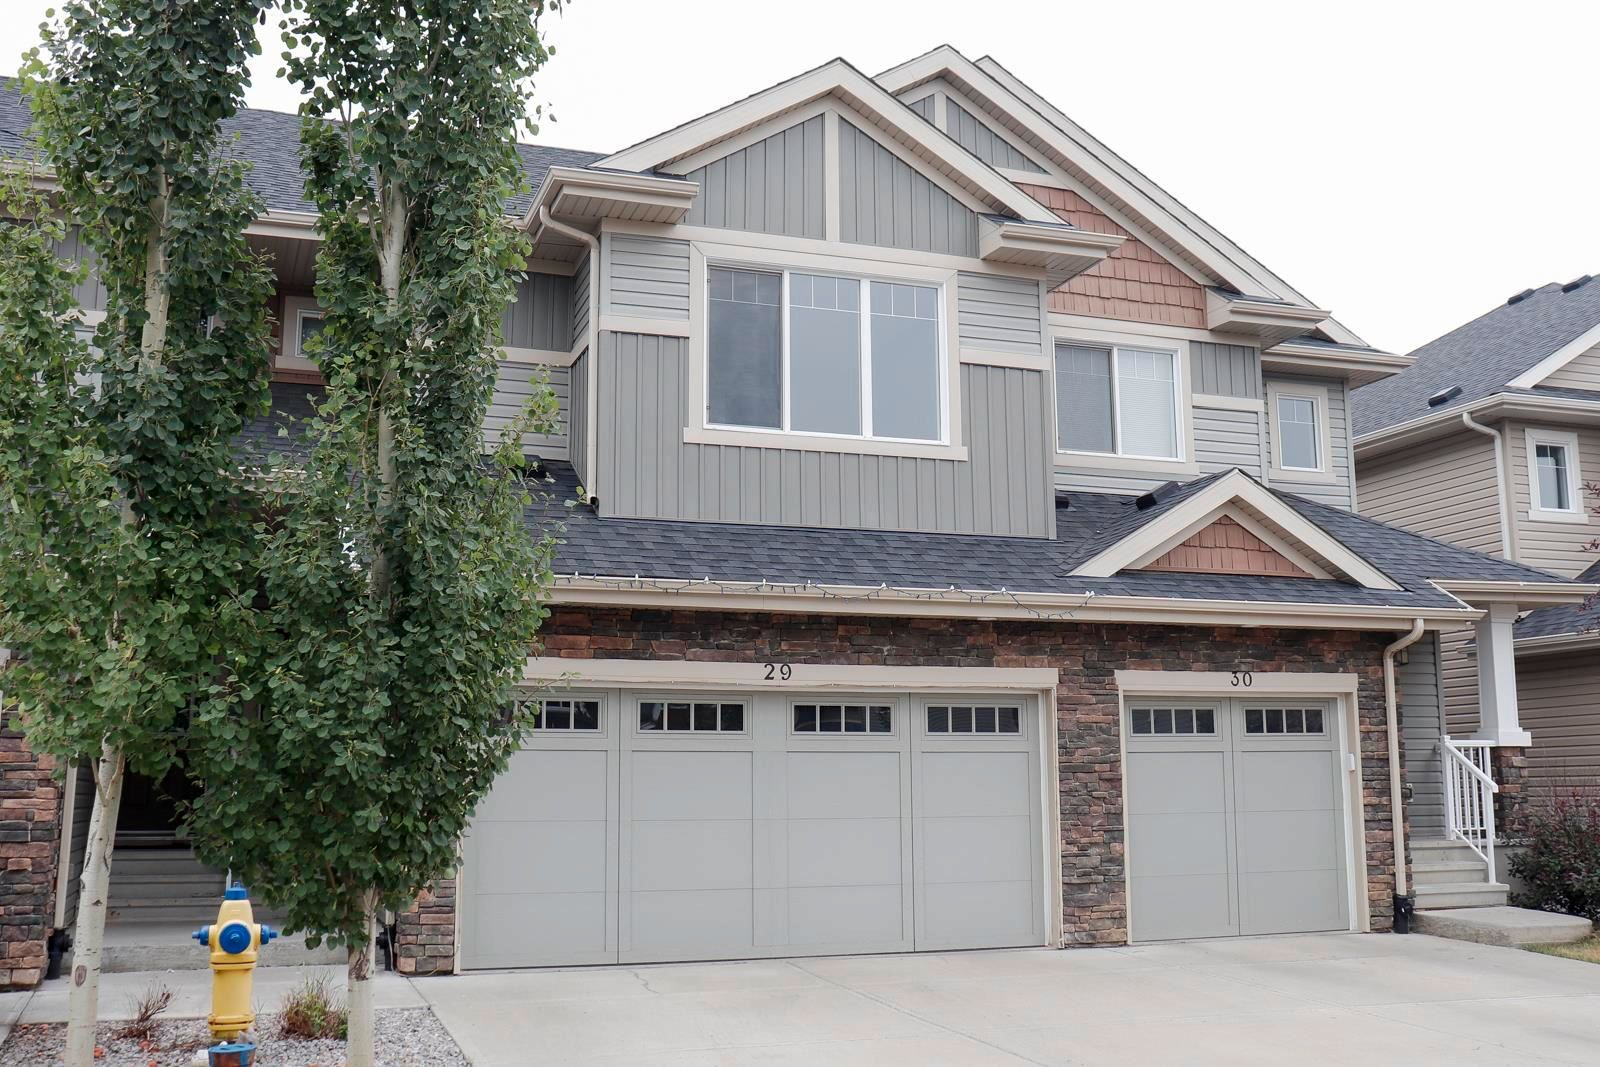 Main Photo: 29 2004 TRUMPETER Way in Edmonton: Zone 59 Townhouse for sale : MLS®# E4255315